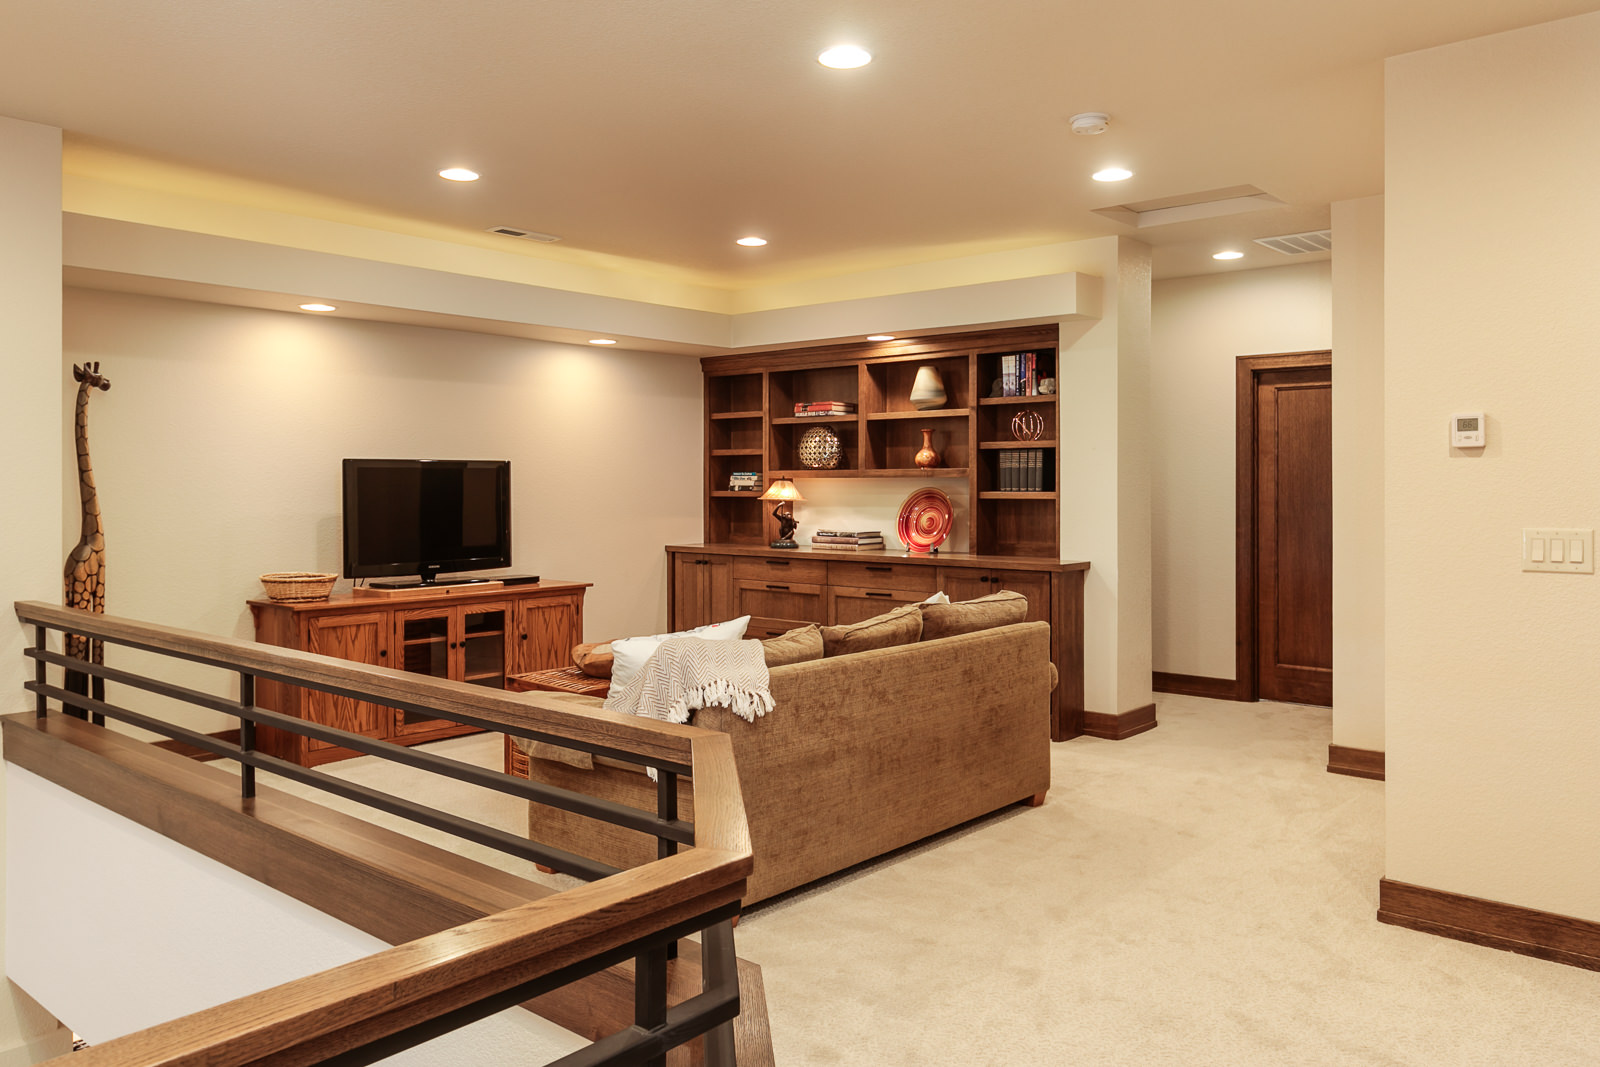 8643 SE Northern Heights Ct – Spin Virtual Tours Michael Barclay Home Design on arnold home design, rosemont home design, brown home design, brooklyn home design, ohio home design, alabama home design, bethesda home design, oxford home design, cambridge home design, hamilton home design, garrison home design, dog home design, madison home design, barton home design, marshall home design, perry home design,